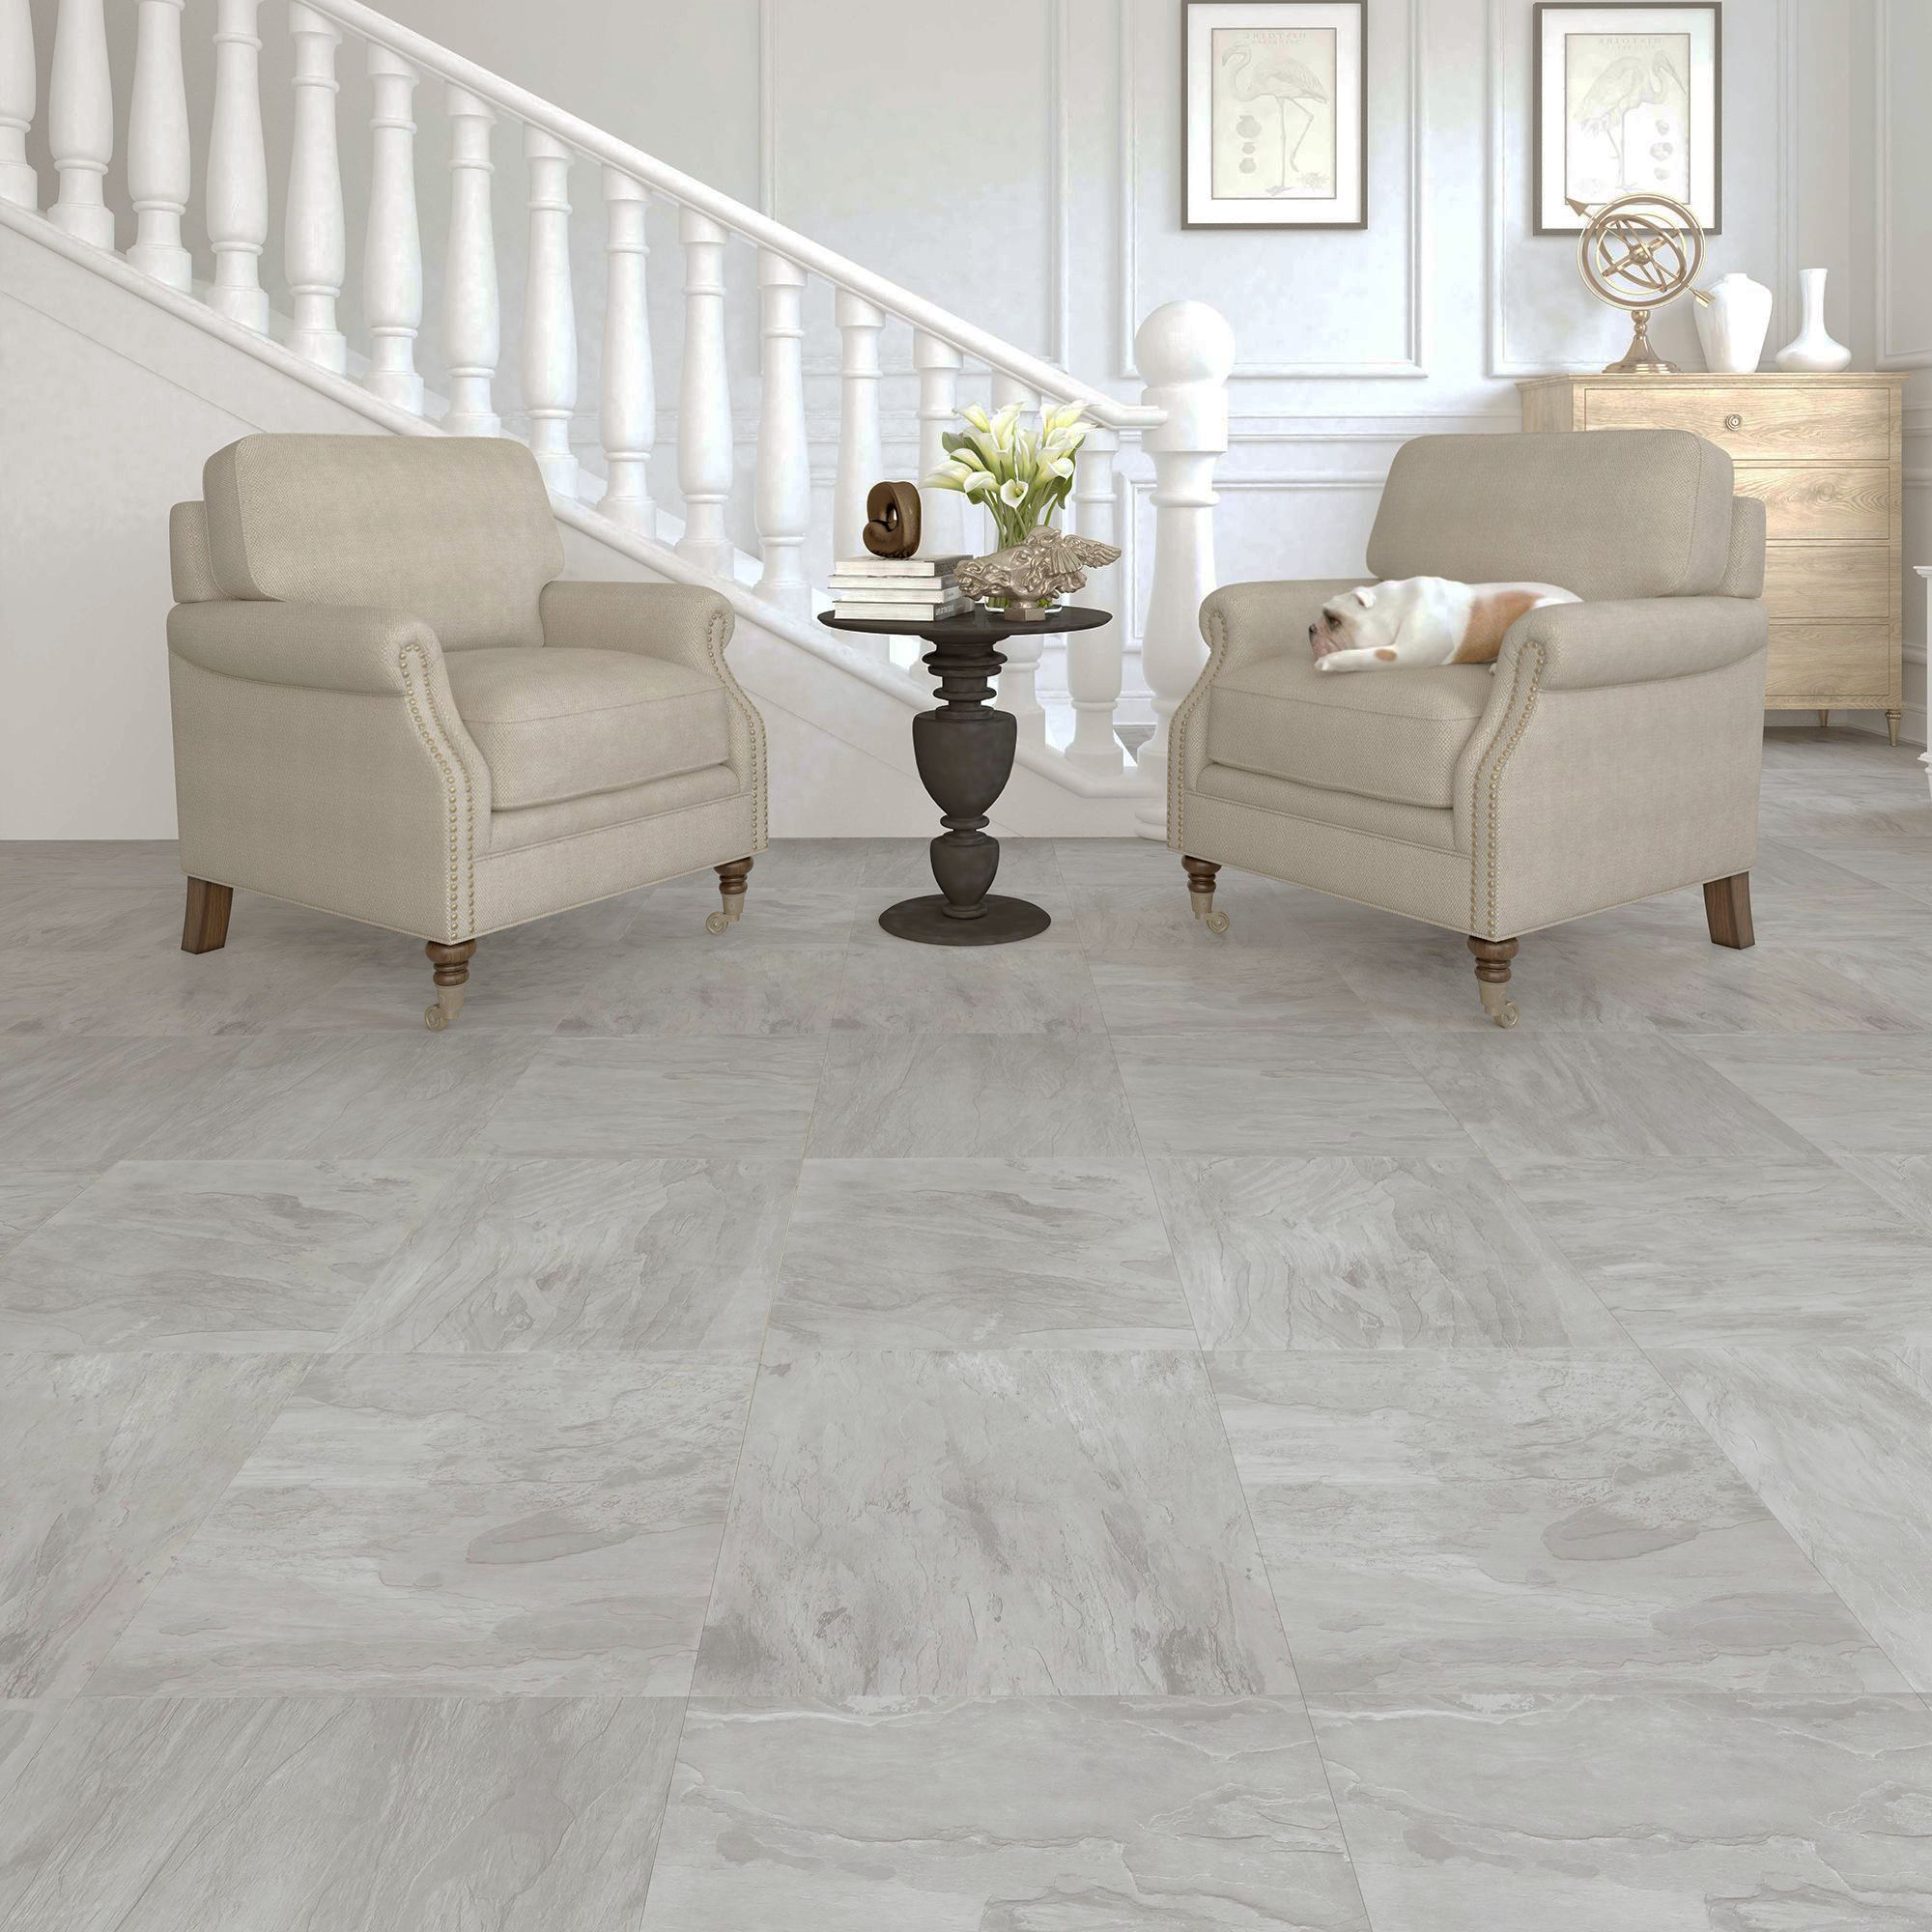 Leggiero light grey slate effect laminate flooring Gray laminate flooring